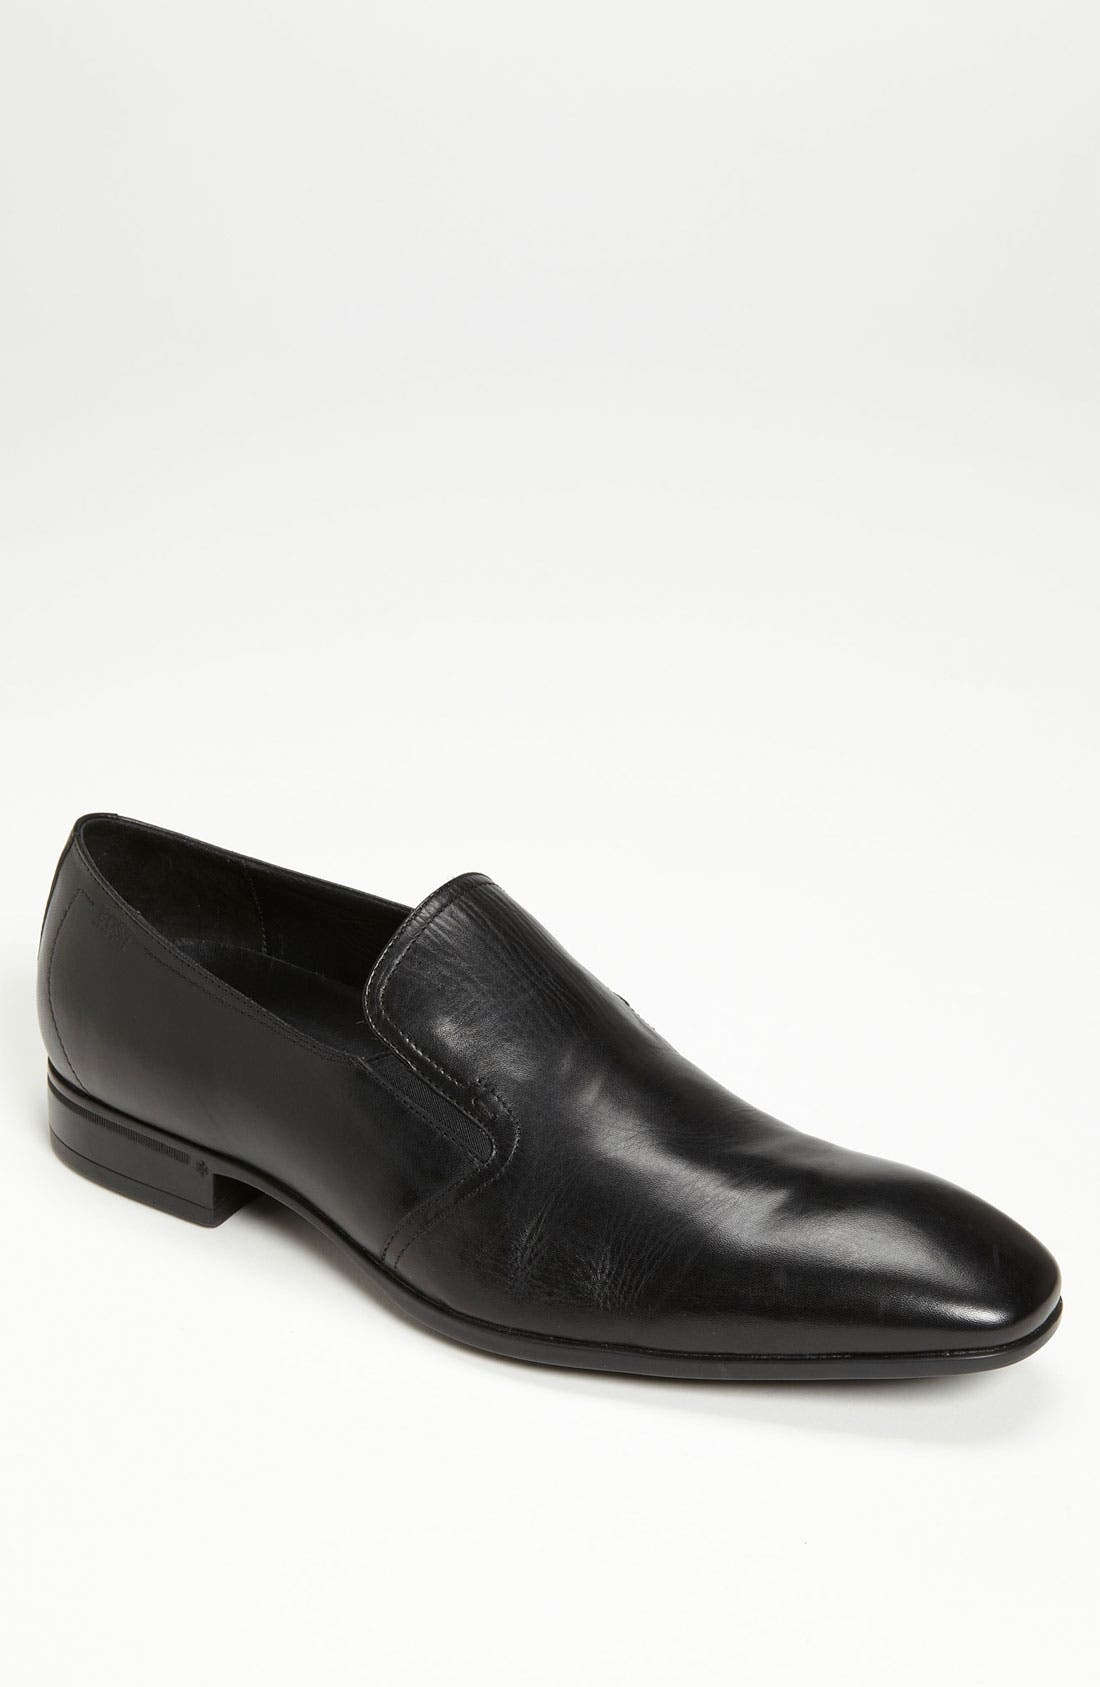 Alternate Image 1 Selected - BOSS Black 'Vermir' Loafer